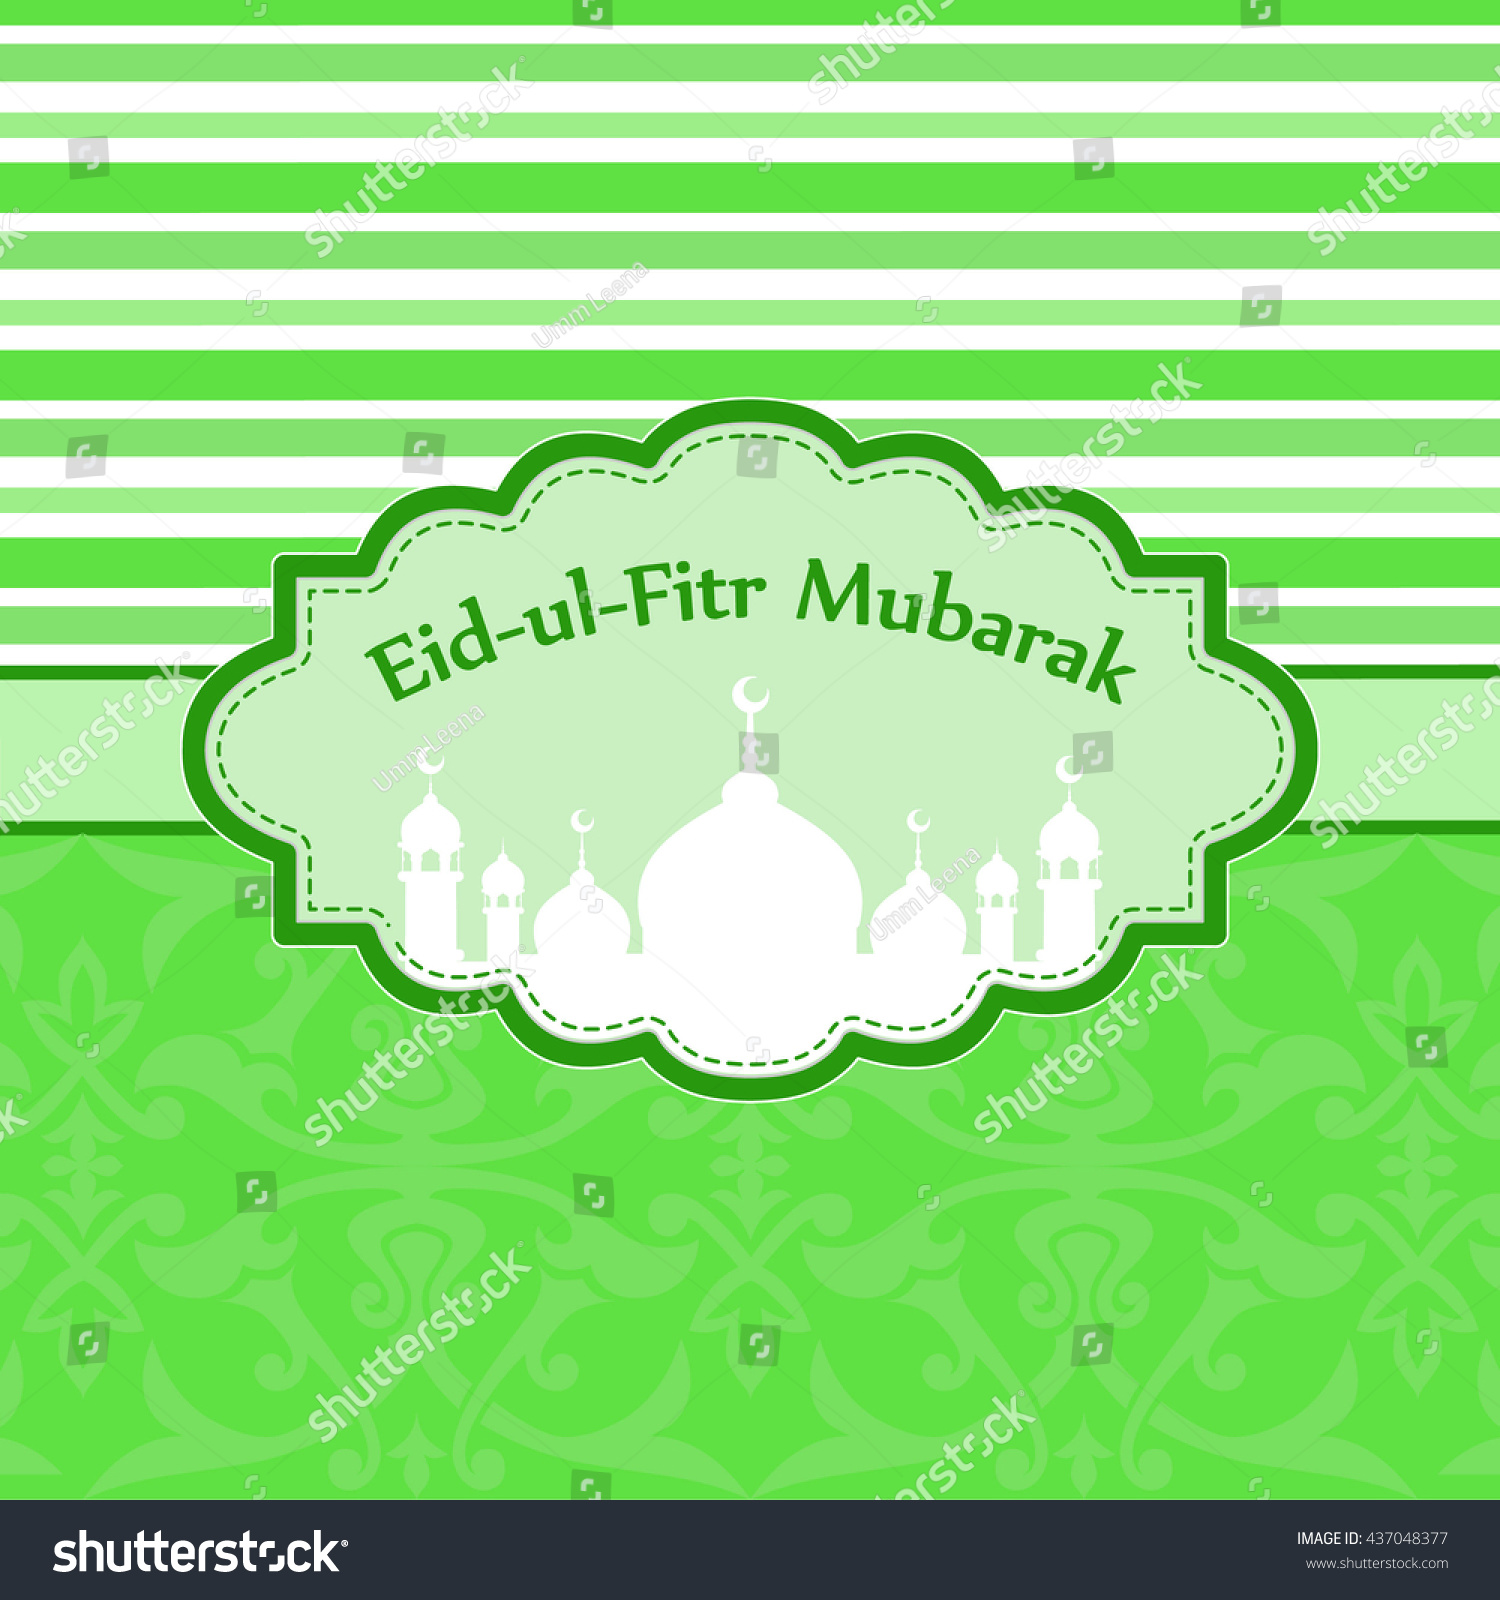 Amazing Hajj Eid Al-Fitr Decorations - stock-vector-sticker-or-label-design-for-eid-al-fitr-celebration-design-decorated-frame-with-mosque-for-month-437048377  Pic_96336 .jpg